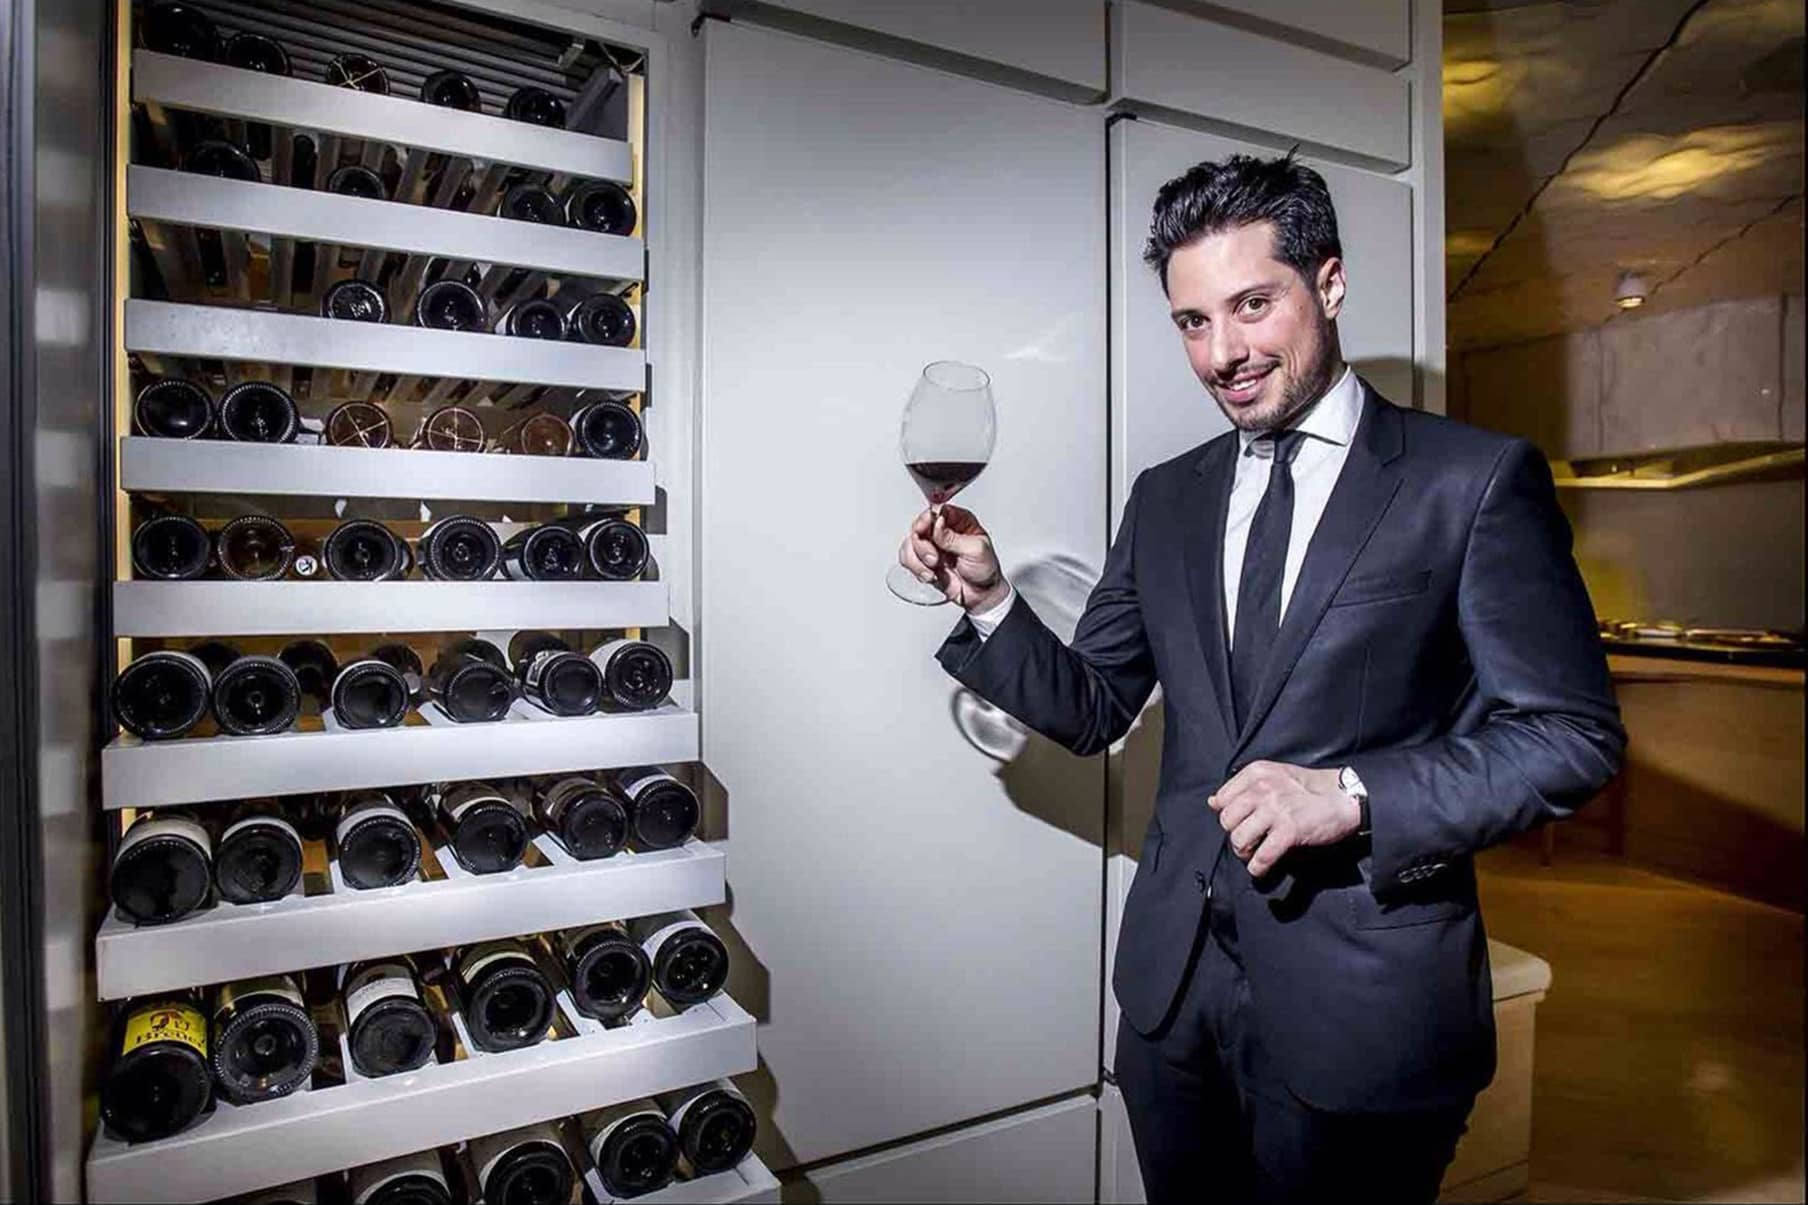 Ismael Álvarez is the head sommelier at Nerua in Bilbao.